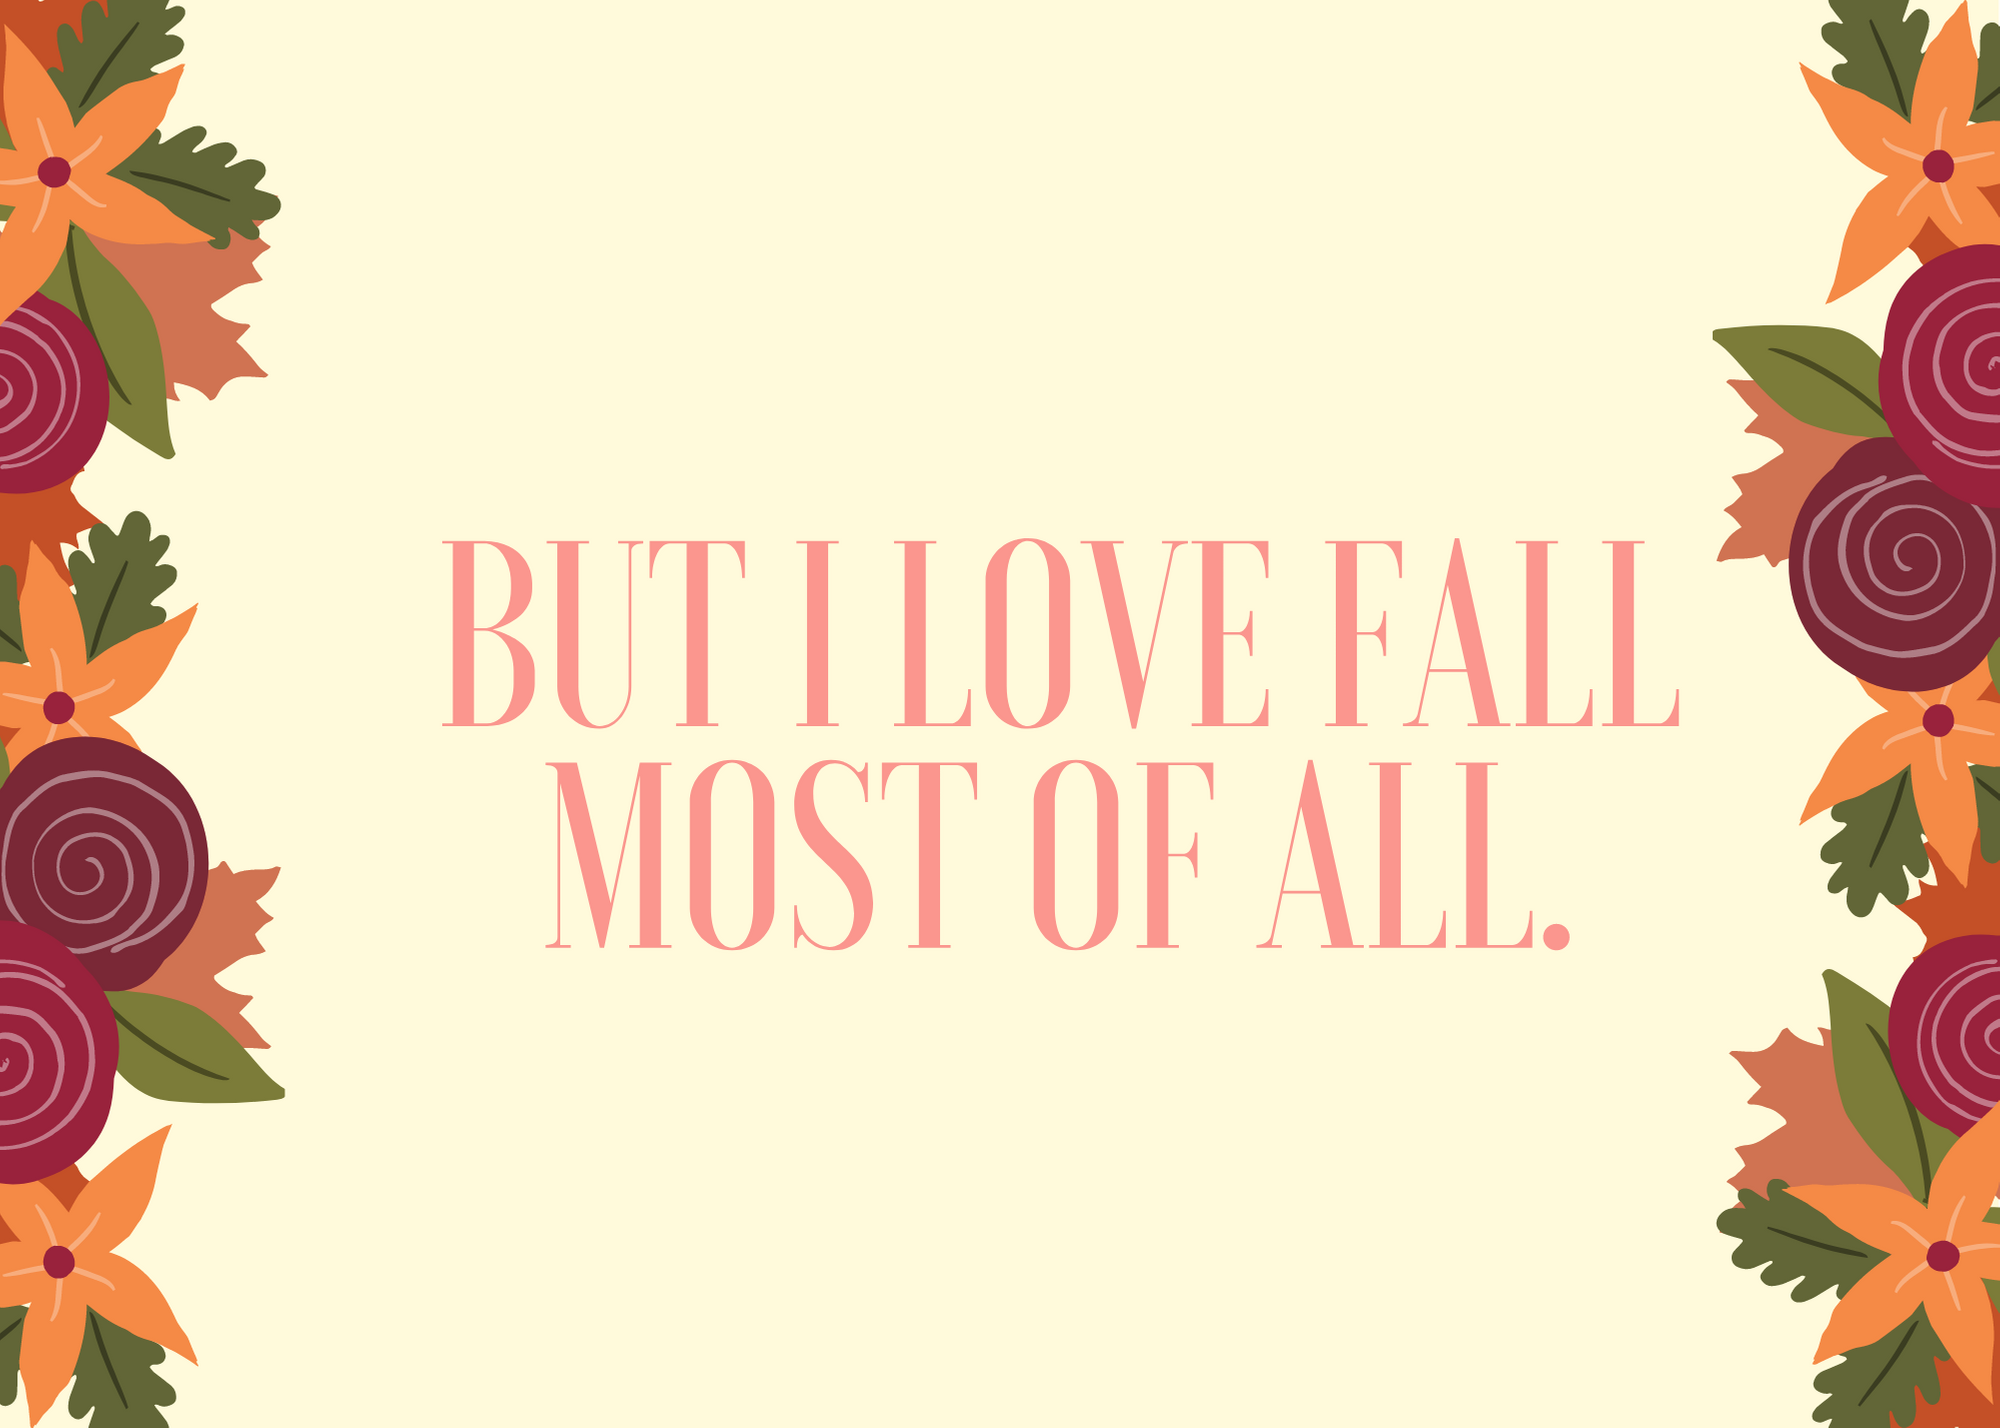 Funny Fall Instagram Caption About Love